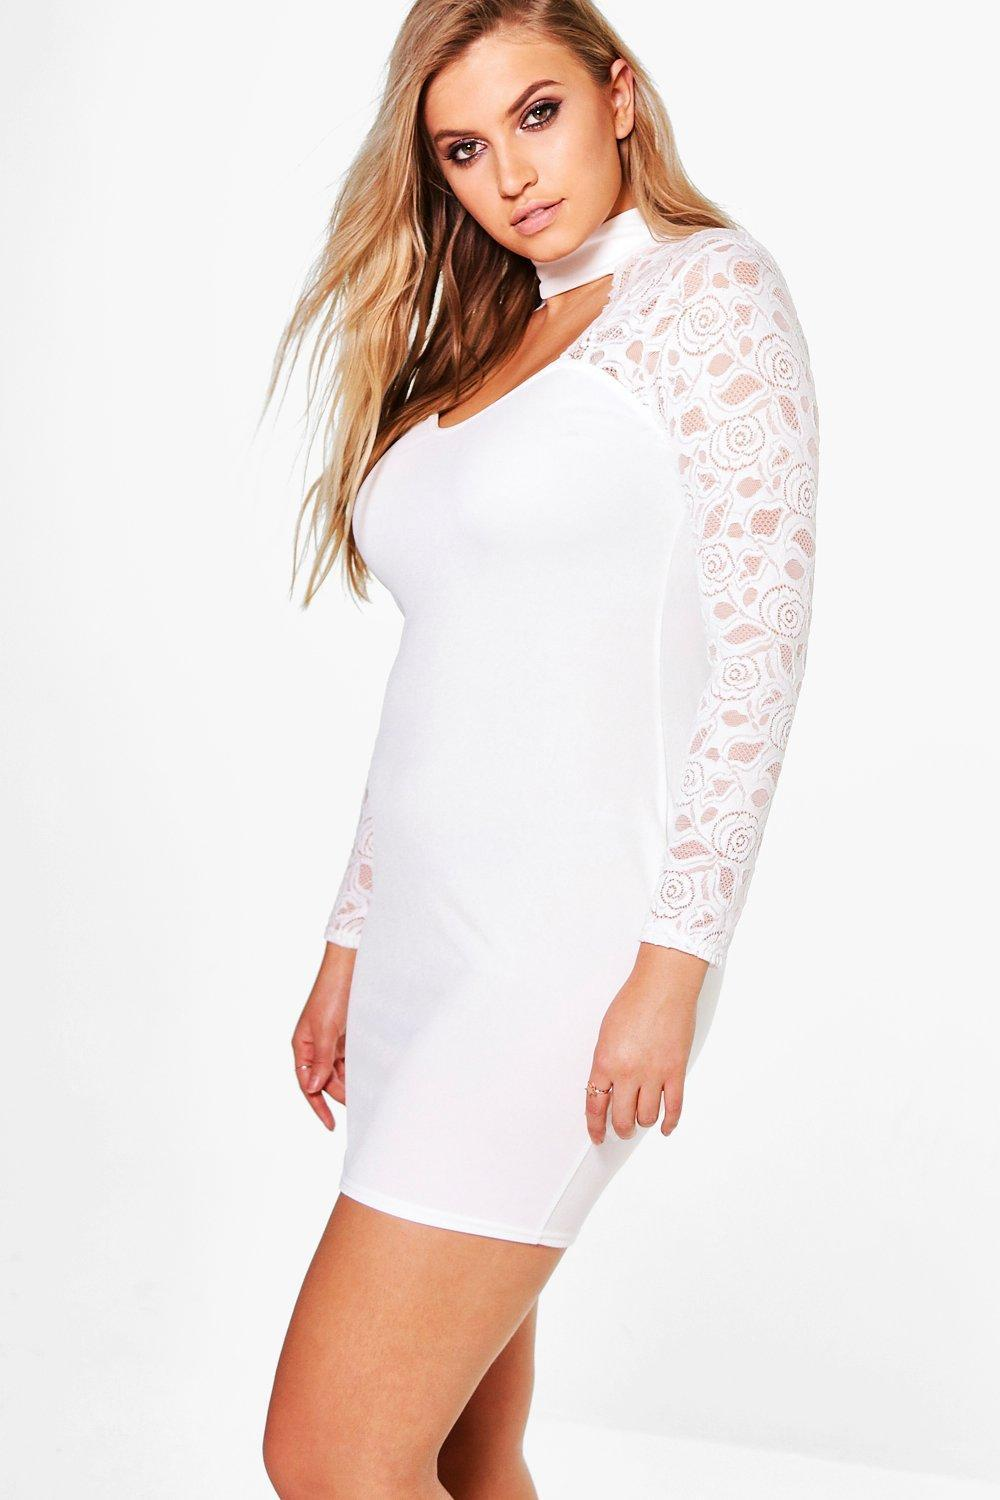 70c0abd45681 Gallery. Previously sold at: Boohoo · Women's White Lace Dresses ...